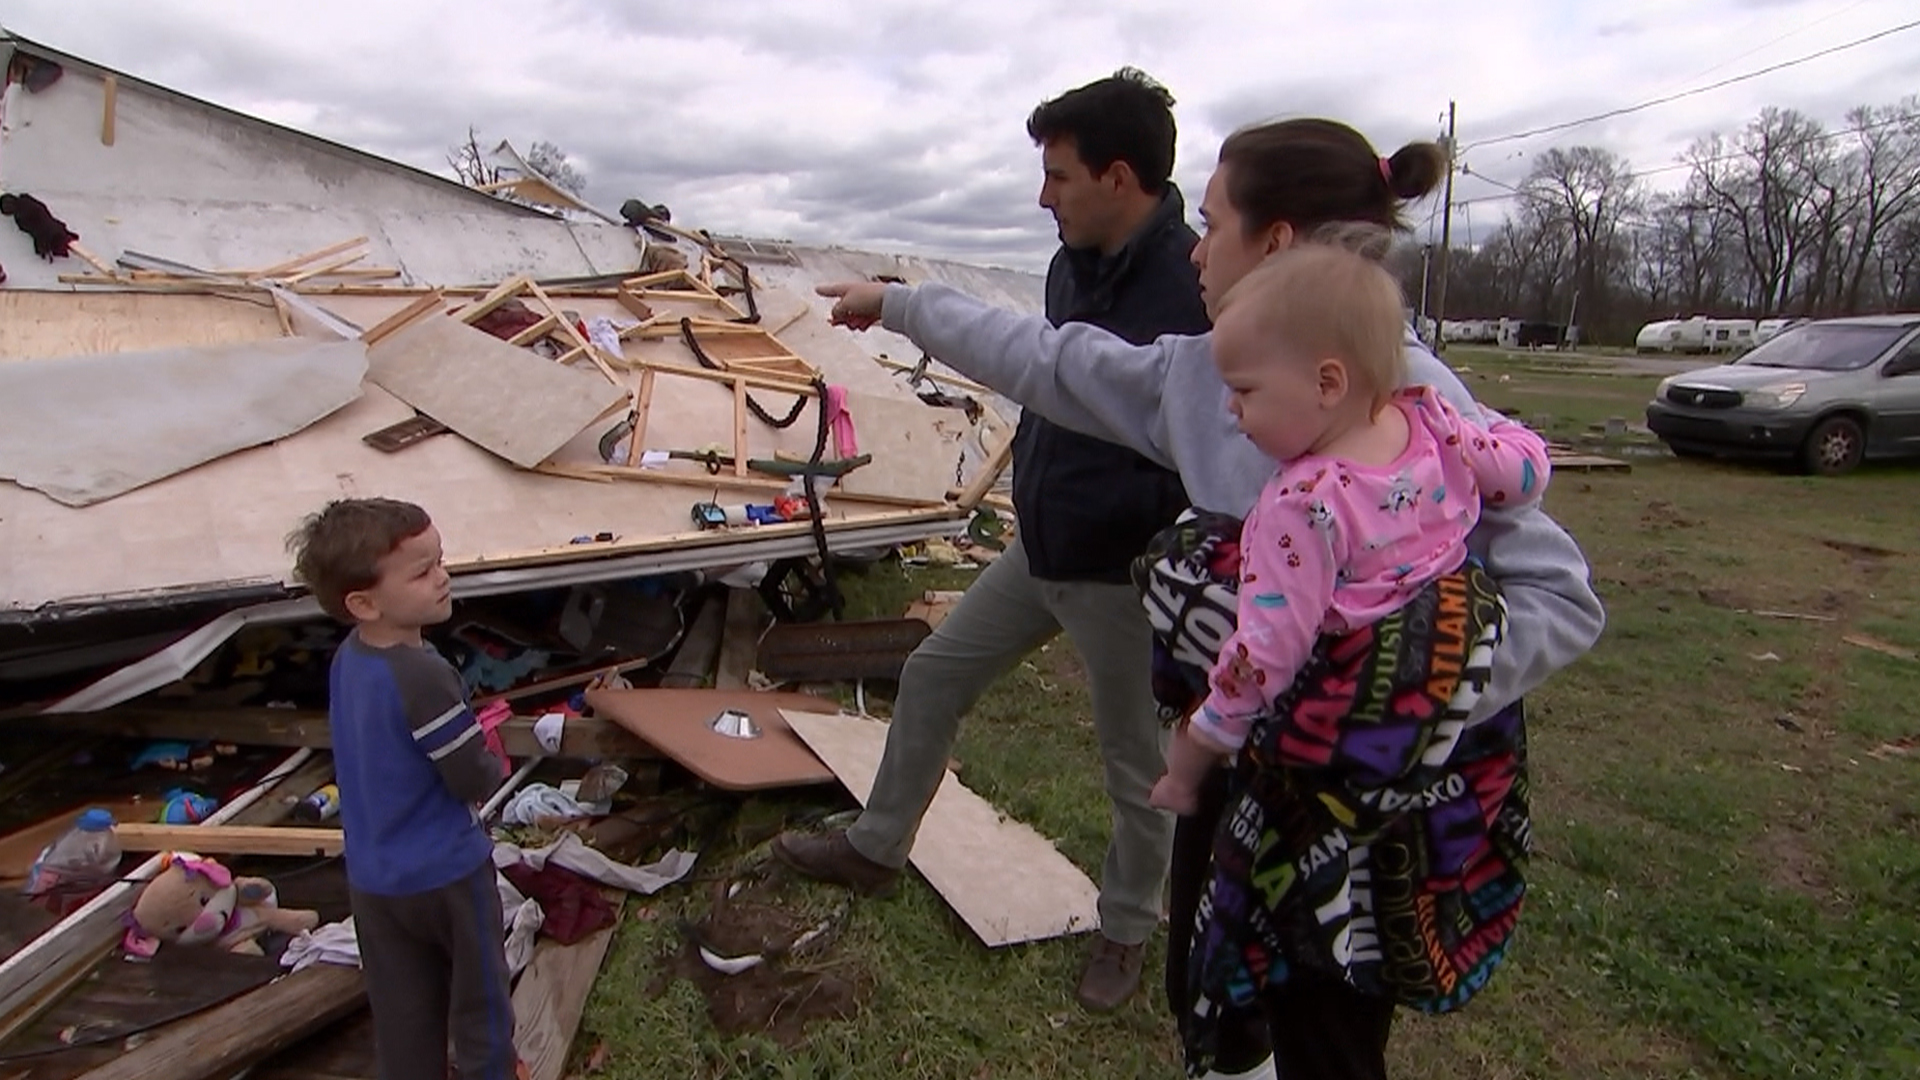 'Pray and Hold On': Family Recounts Riding Out La. Tornado